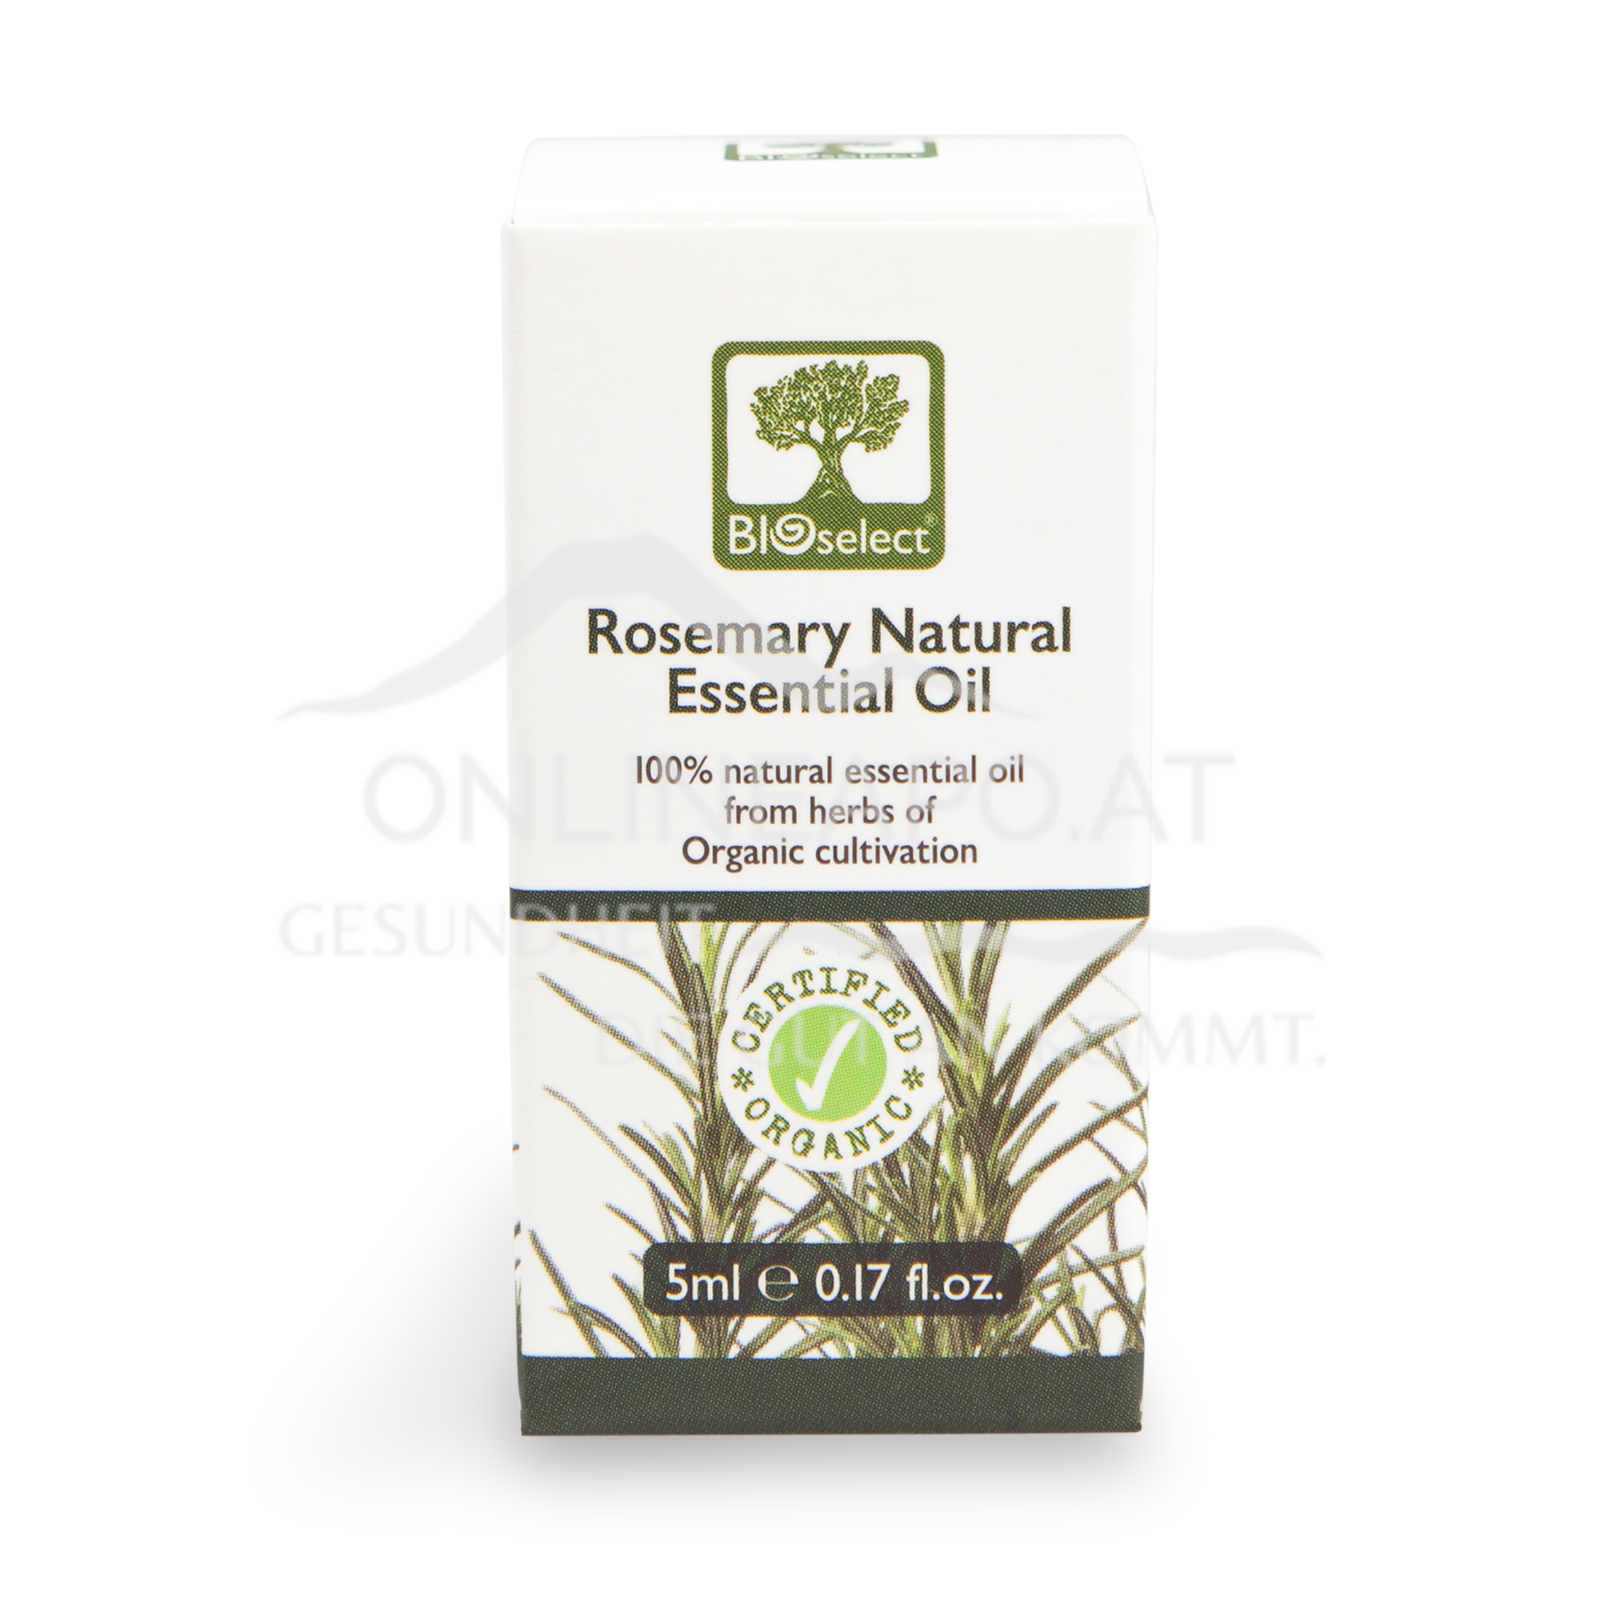 Bioselect Rosmary Natural Essential Oil Certified Organic